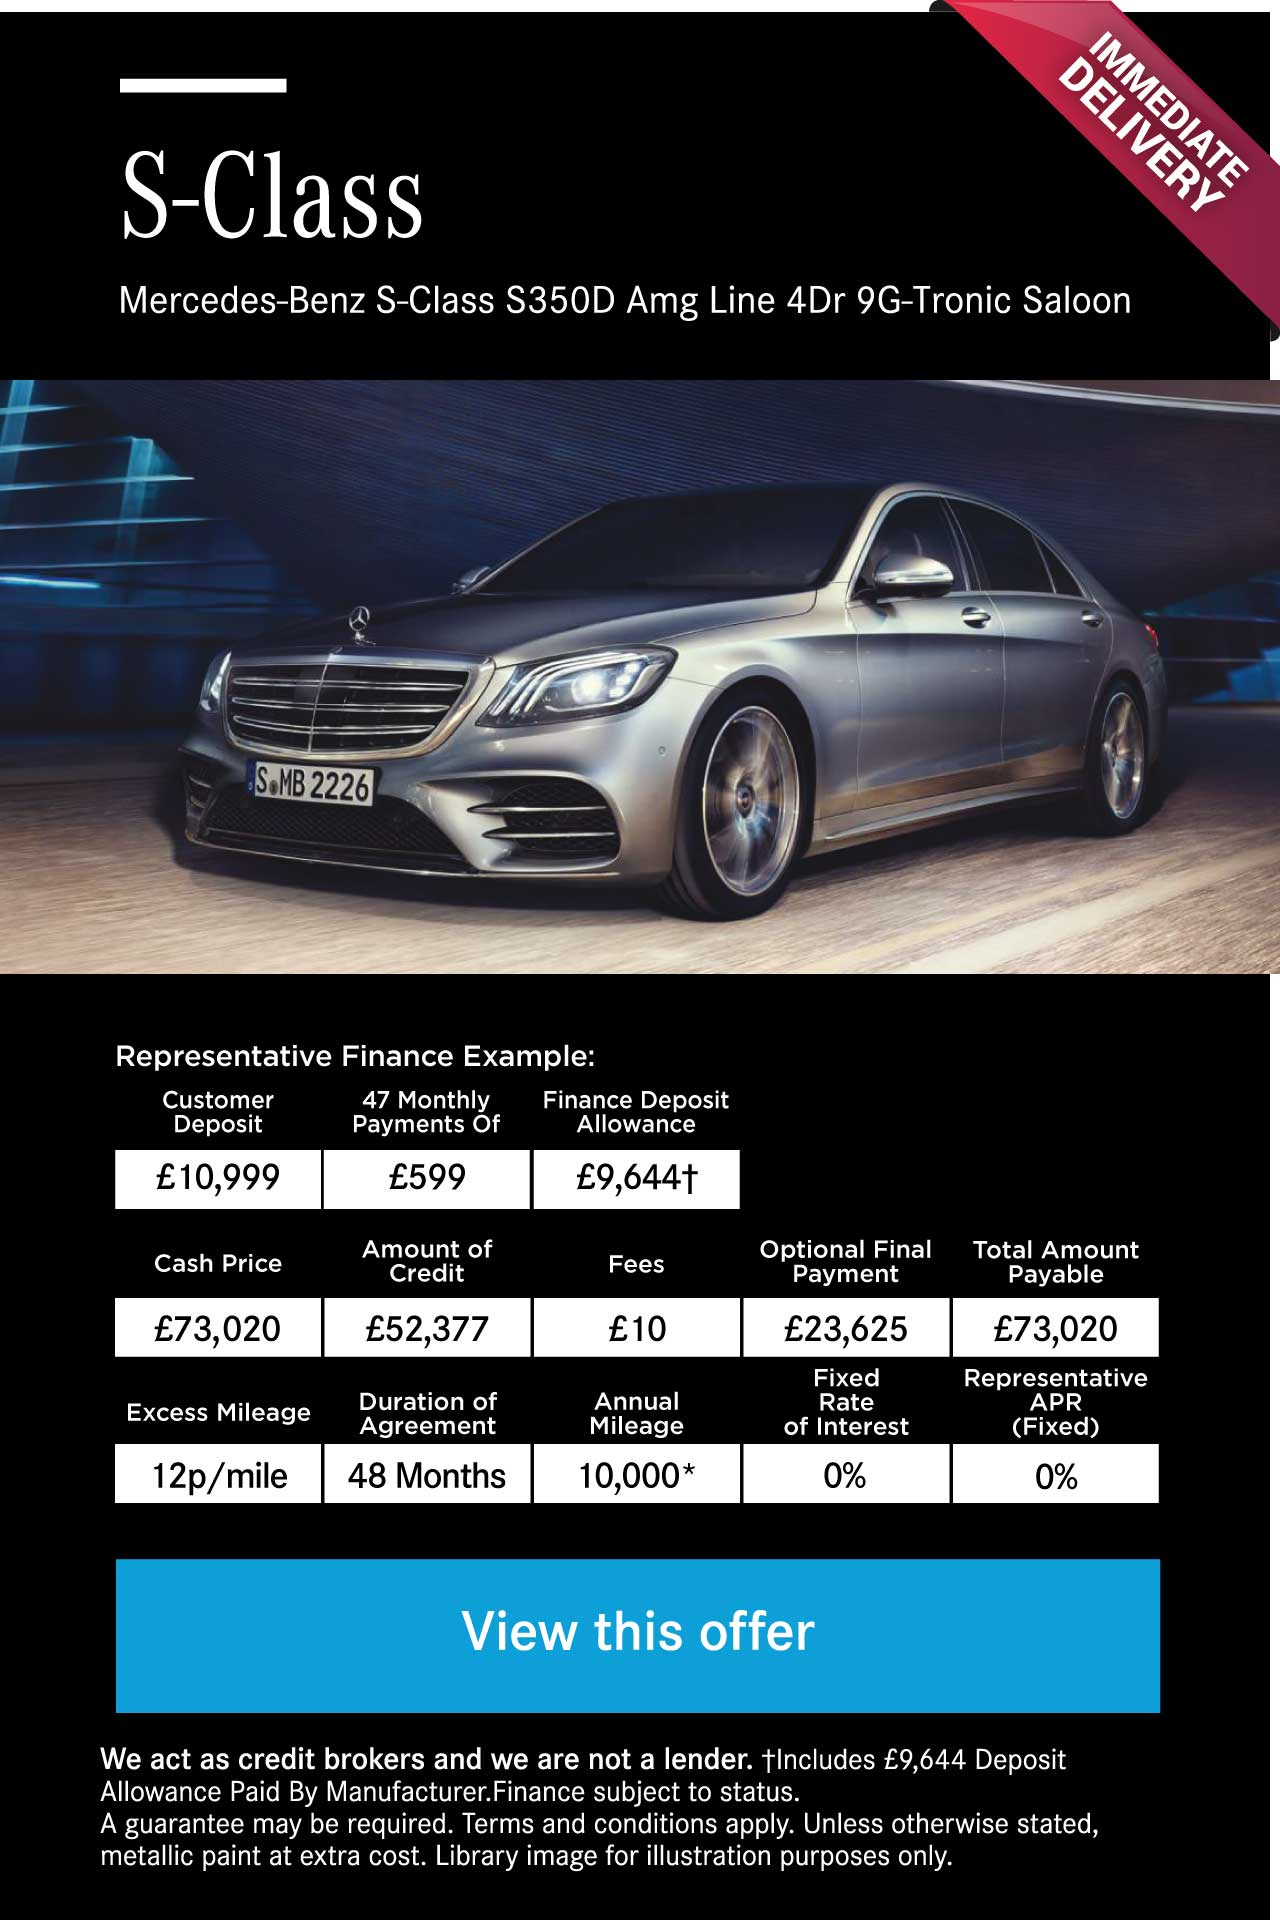 Mercedes-Benz S-Class S350D Amg Line 4Dr 9G-Tronic Diesel Saloon 170918